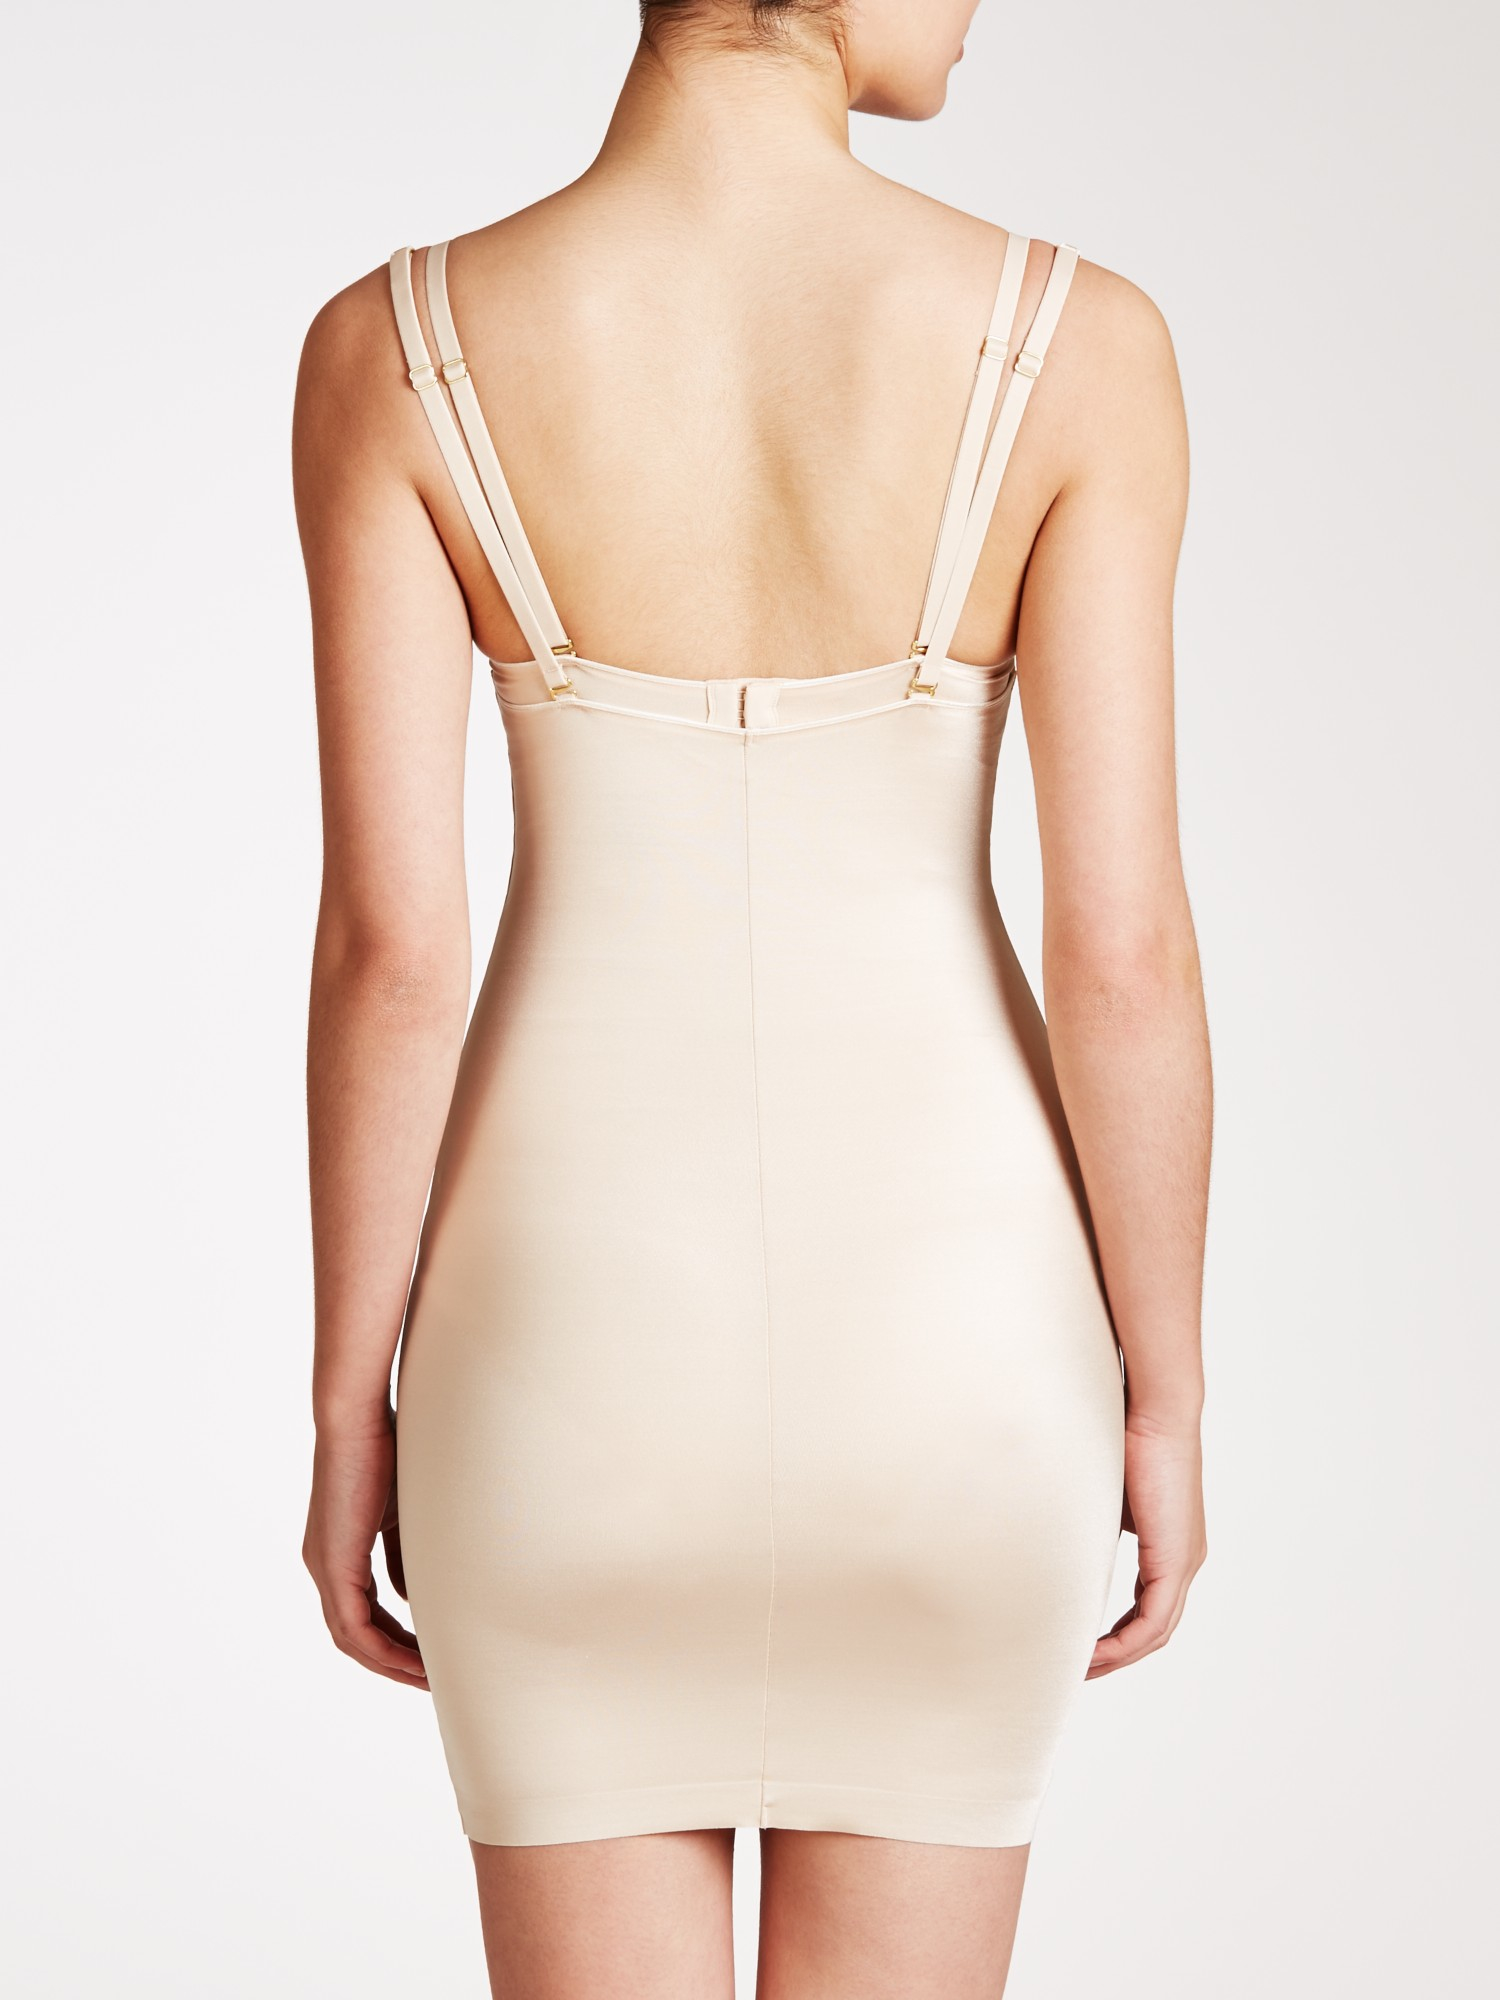 741f1bf21 John Lewis Firm Control Open Bust Slip in Natural - Lyst